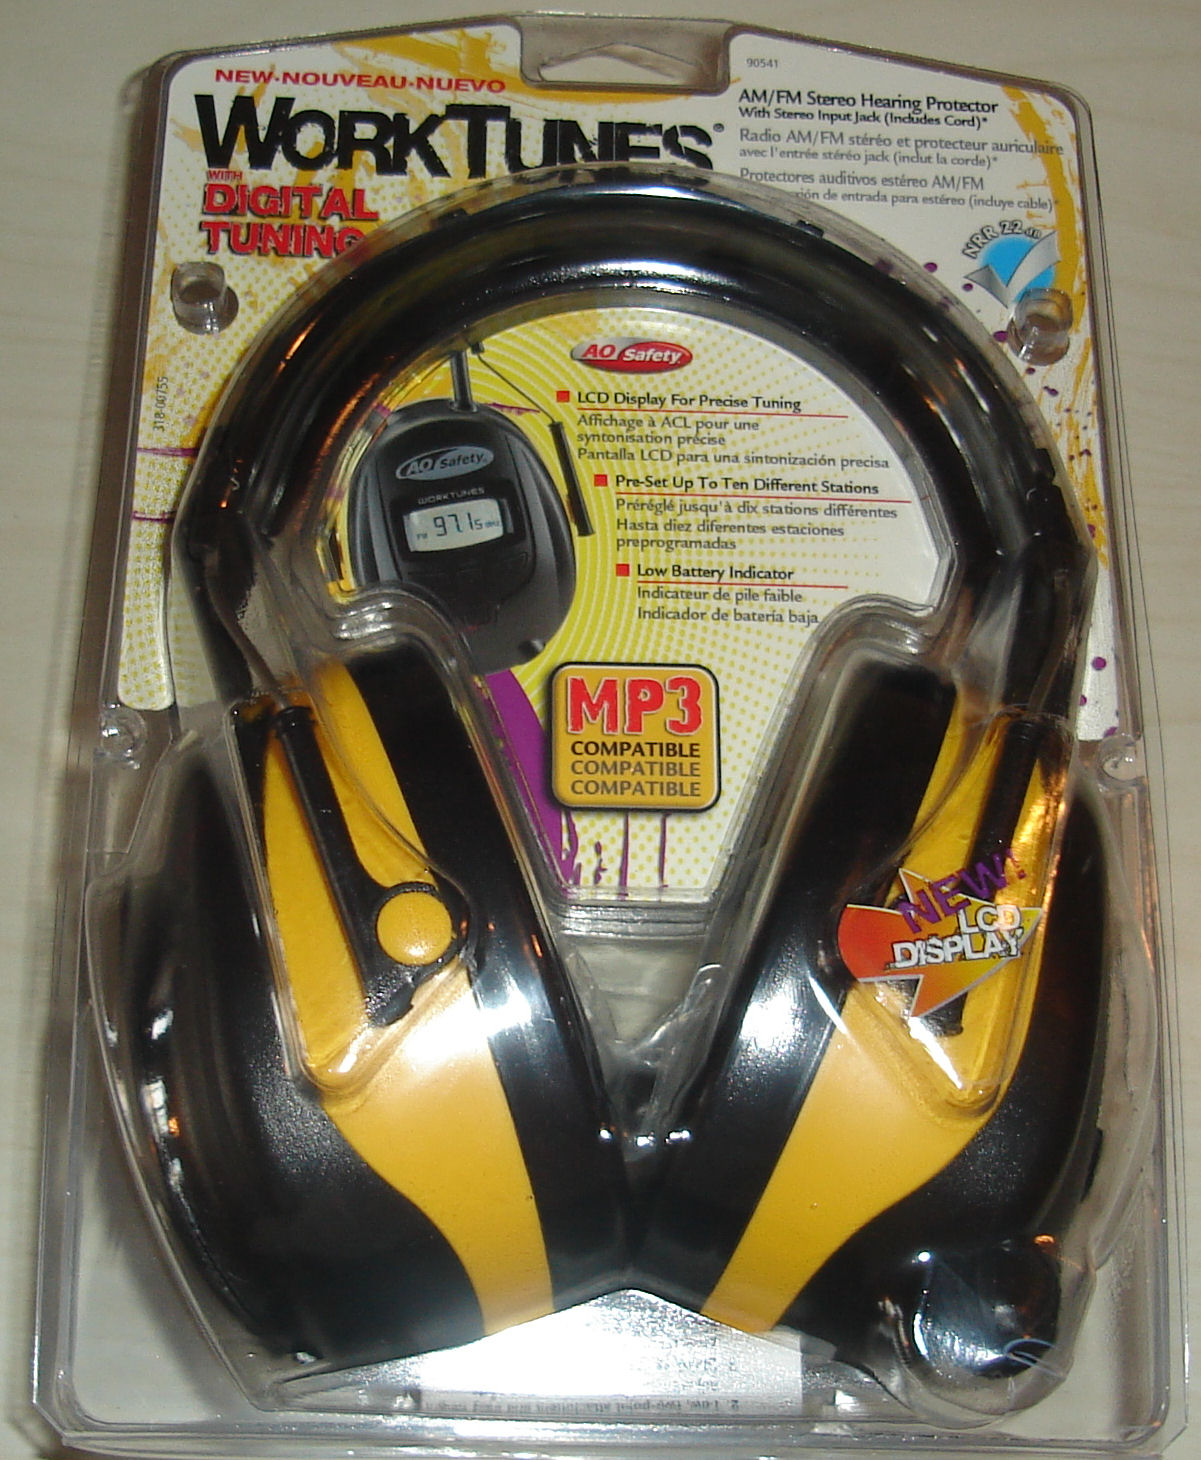 Worktunes noise cancellation, music enablation headphones